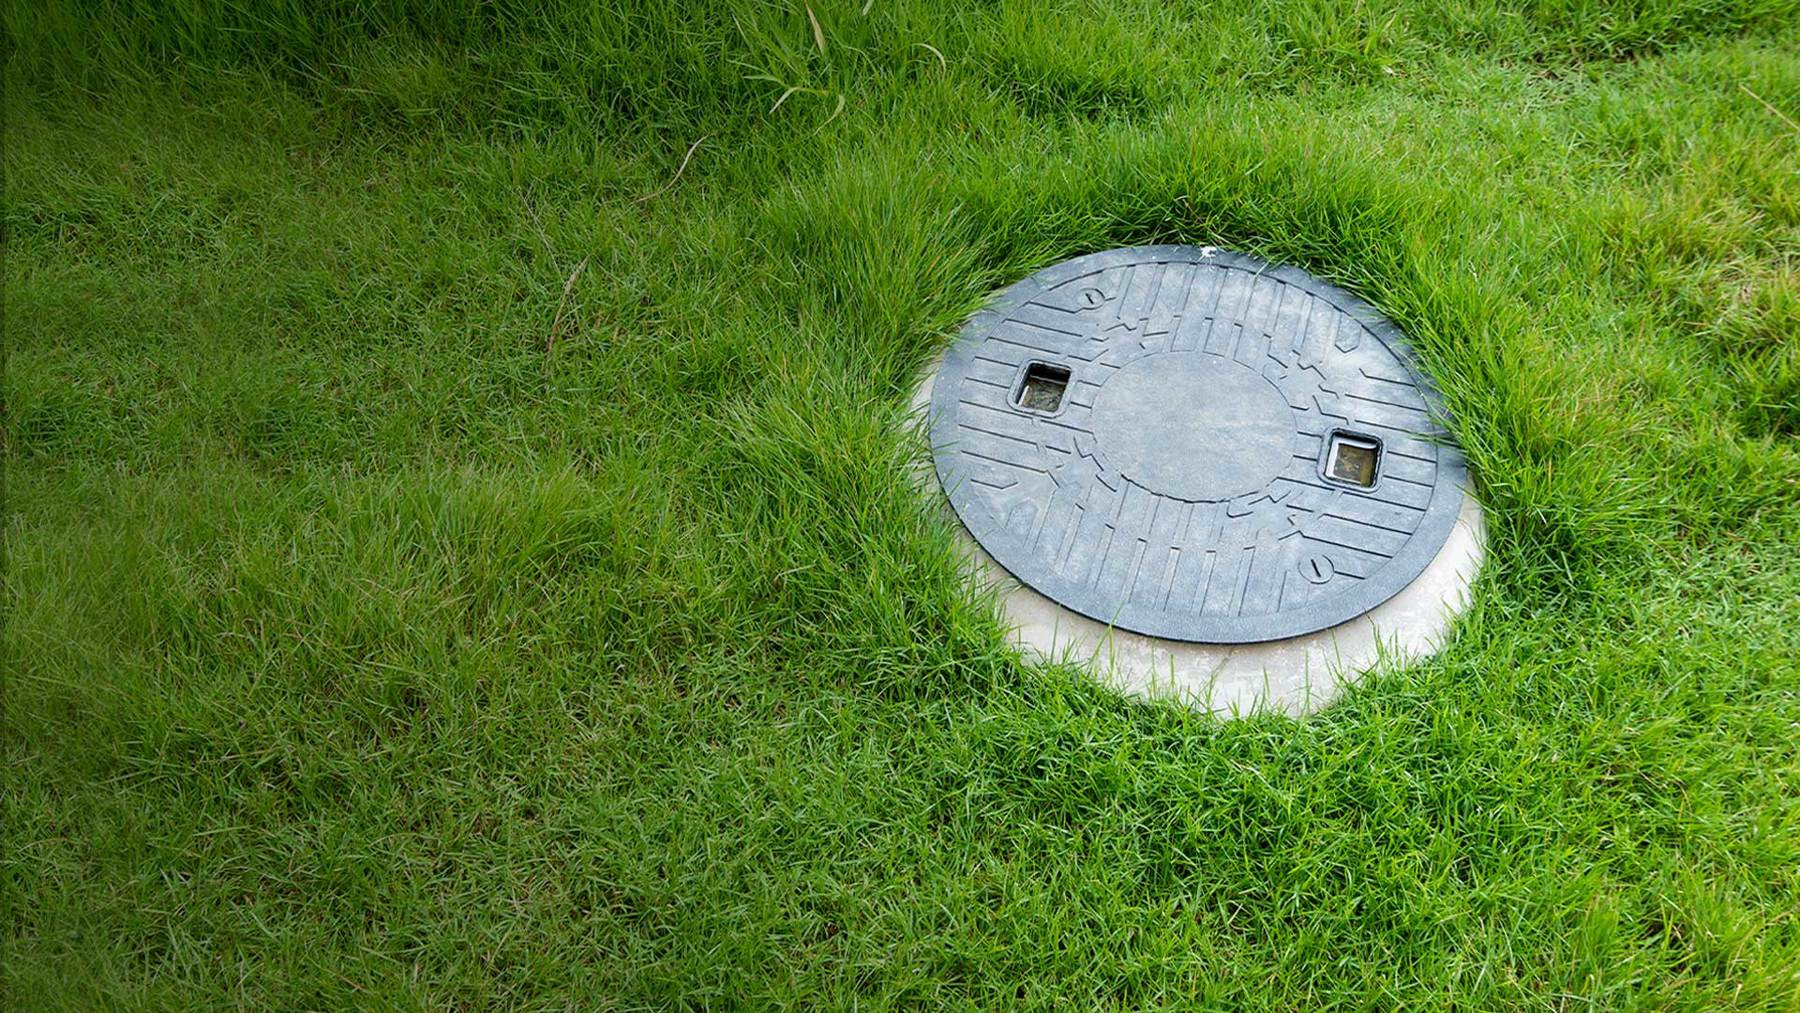 Septic system cover in a grassy yard